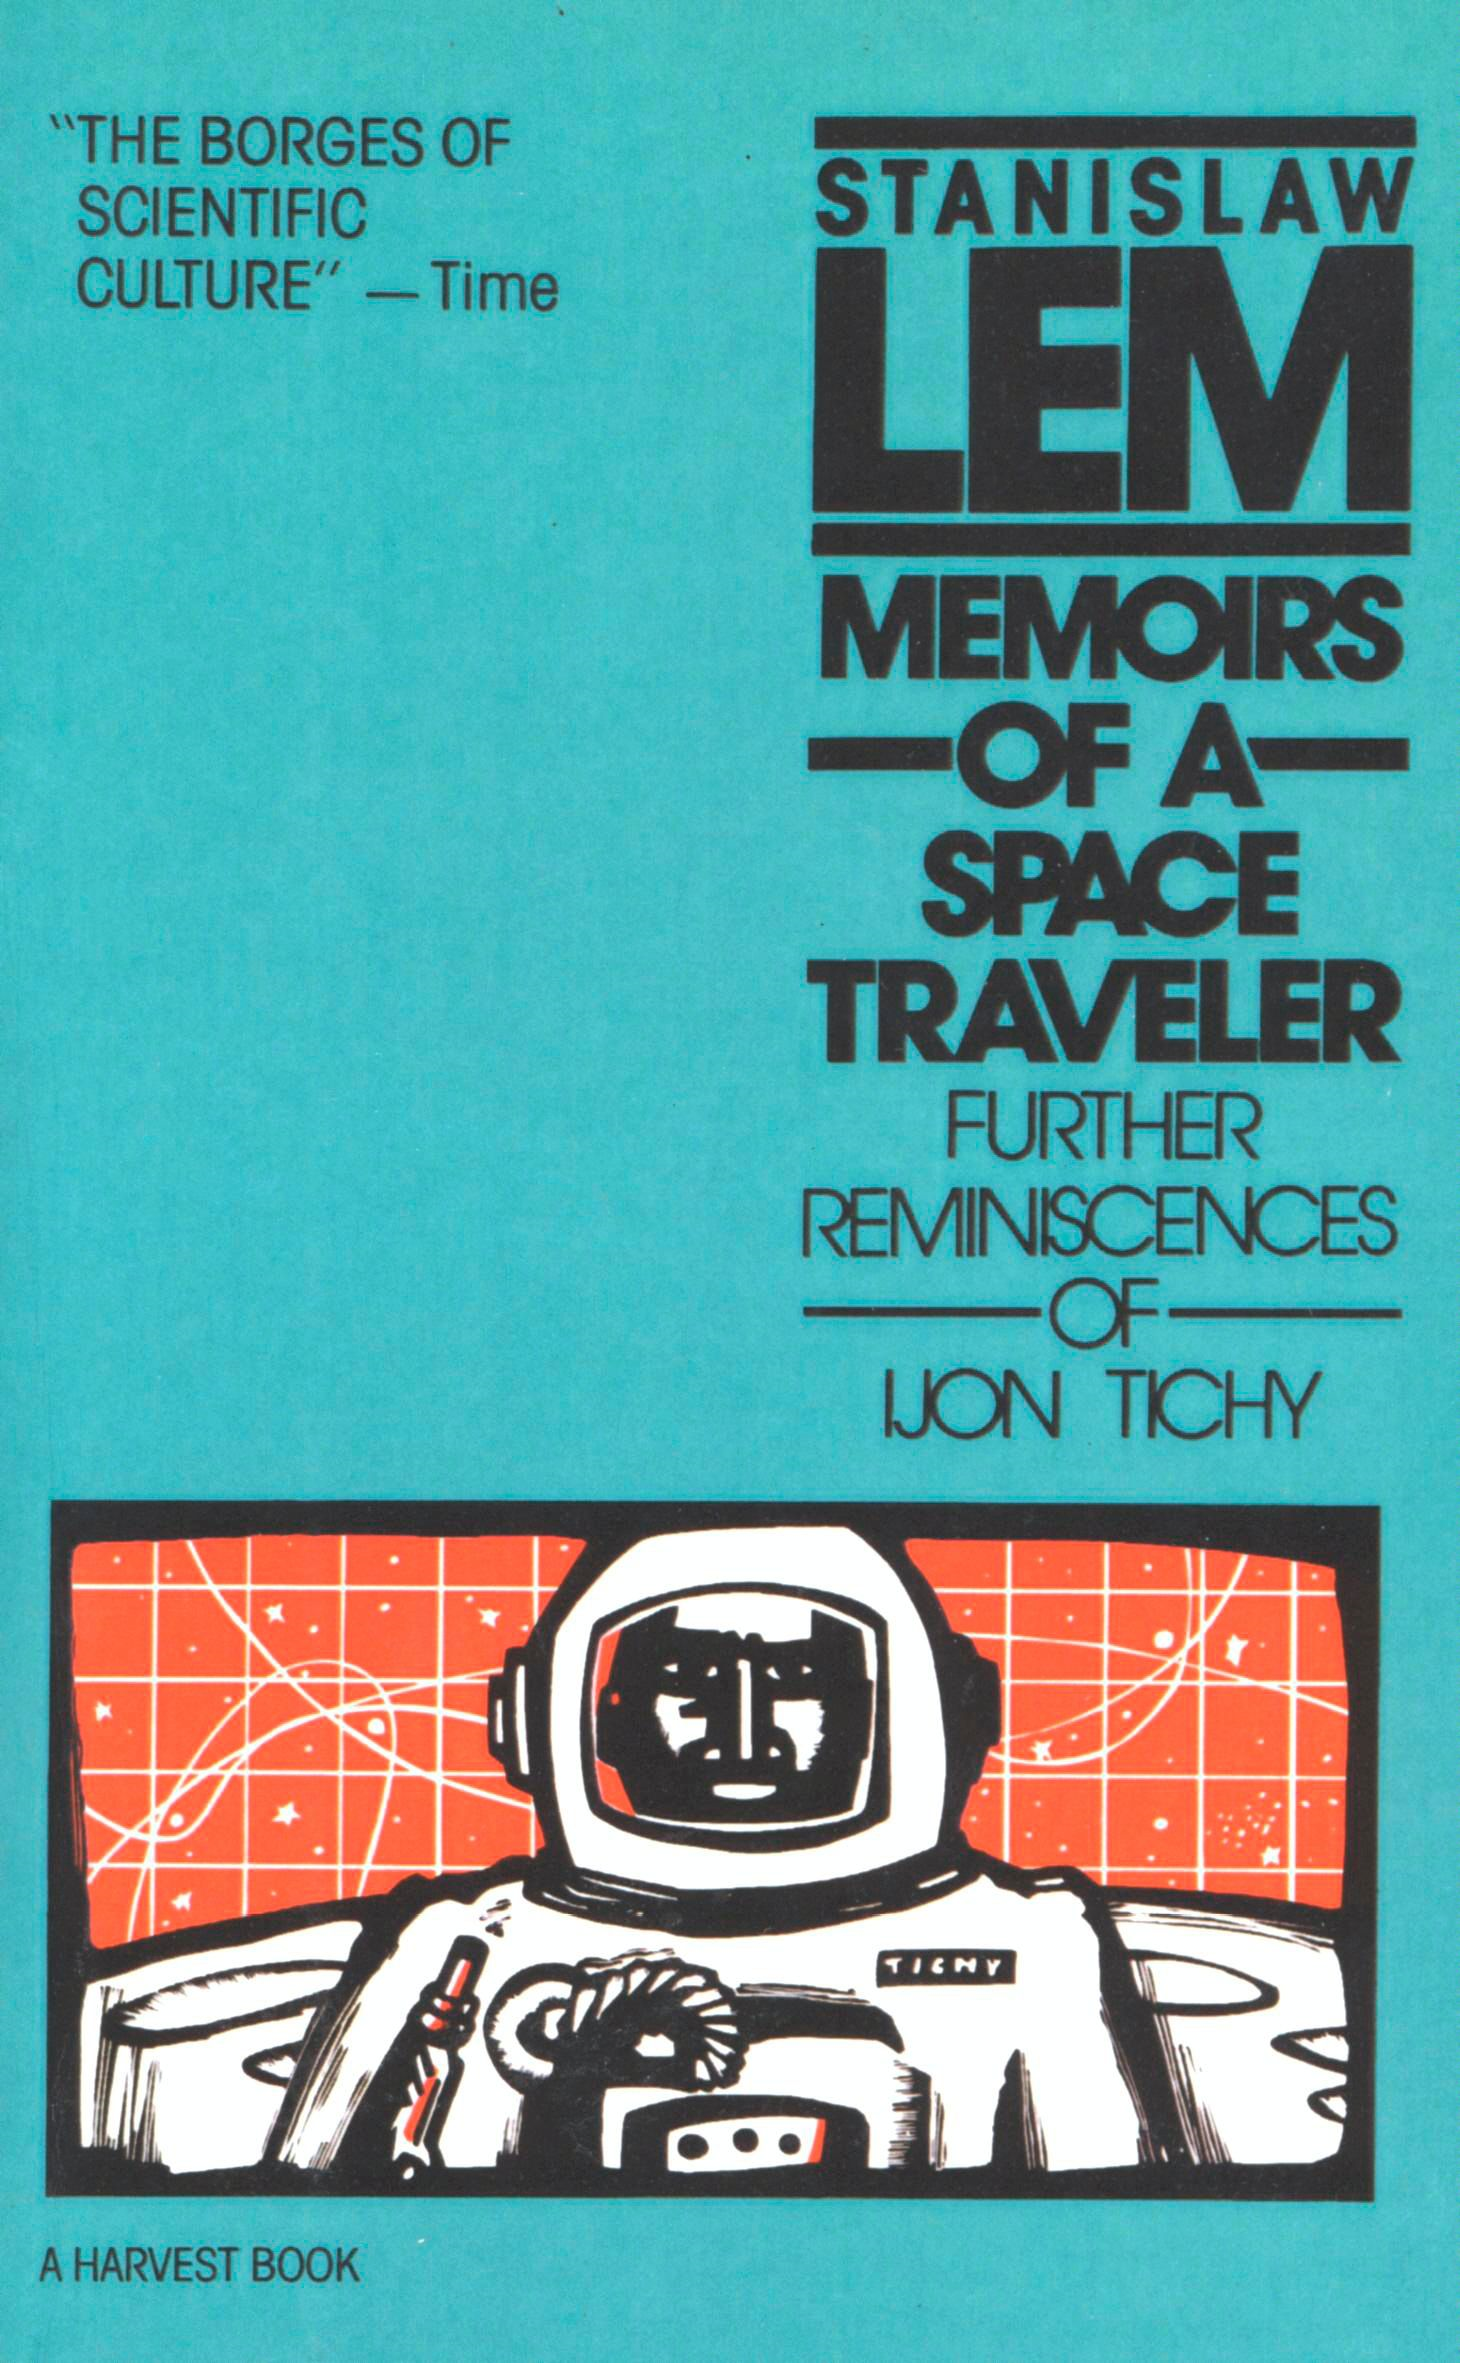 Memoirs of a Space Traveler By: Stanislaw Lem